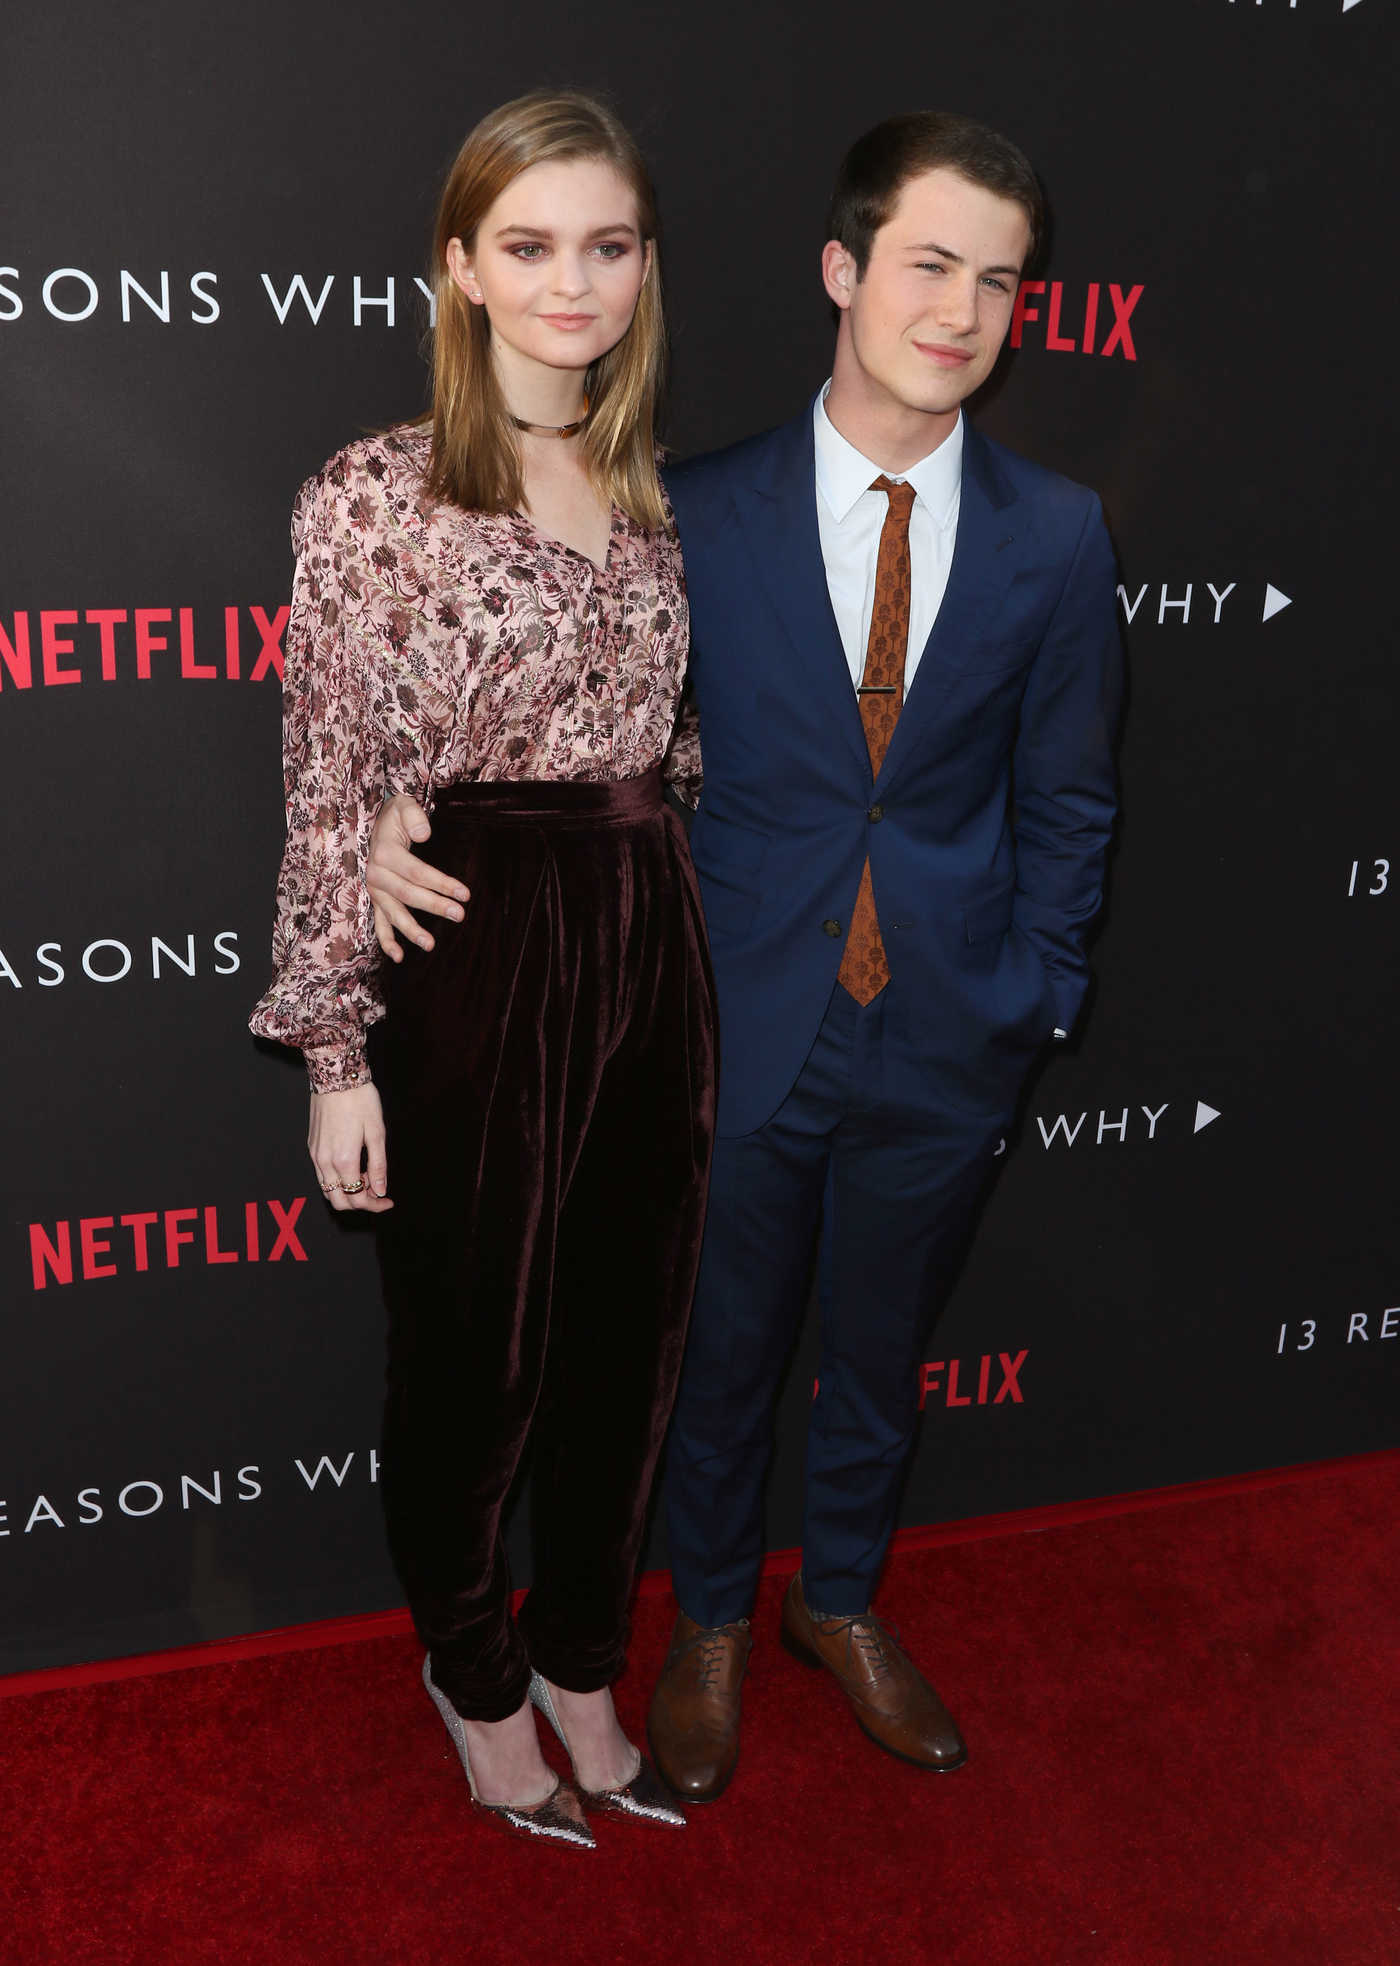 Kerris Dorsey at the 13 Reasons Why TV Series Premiere in Los Angeles 03/30/2017